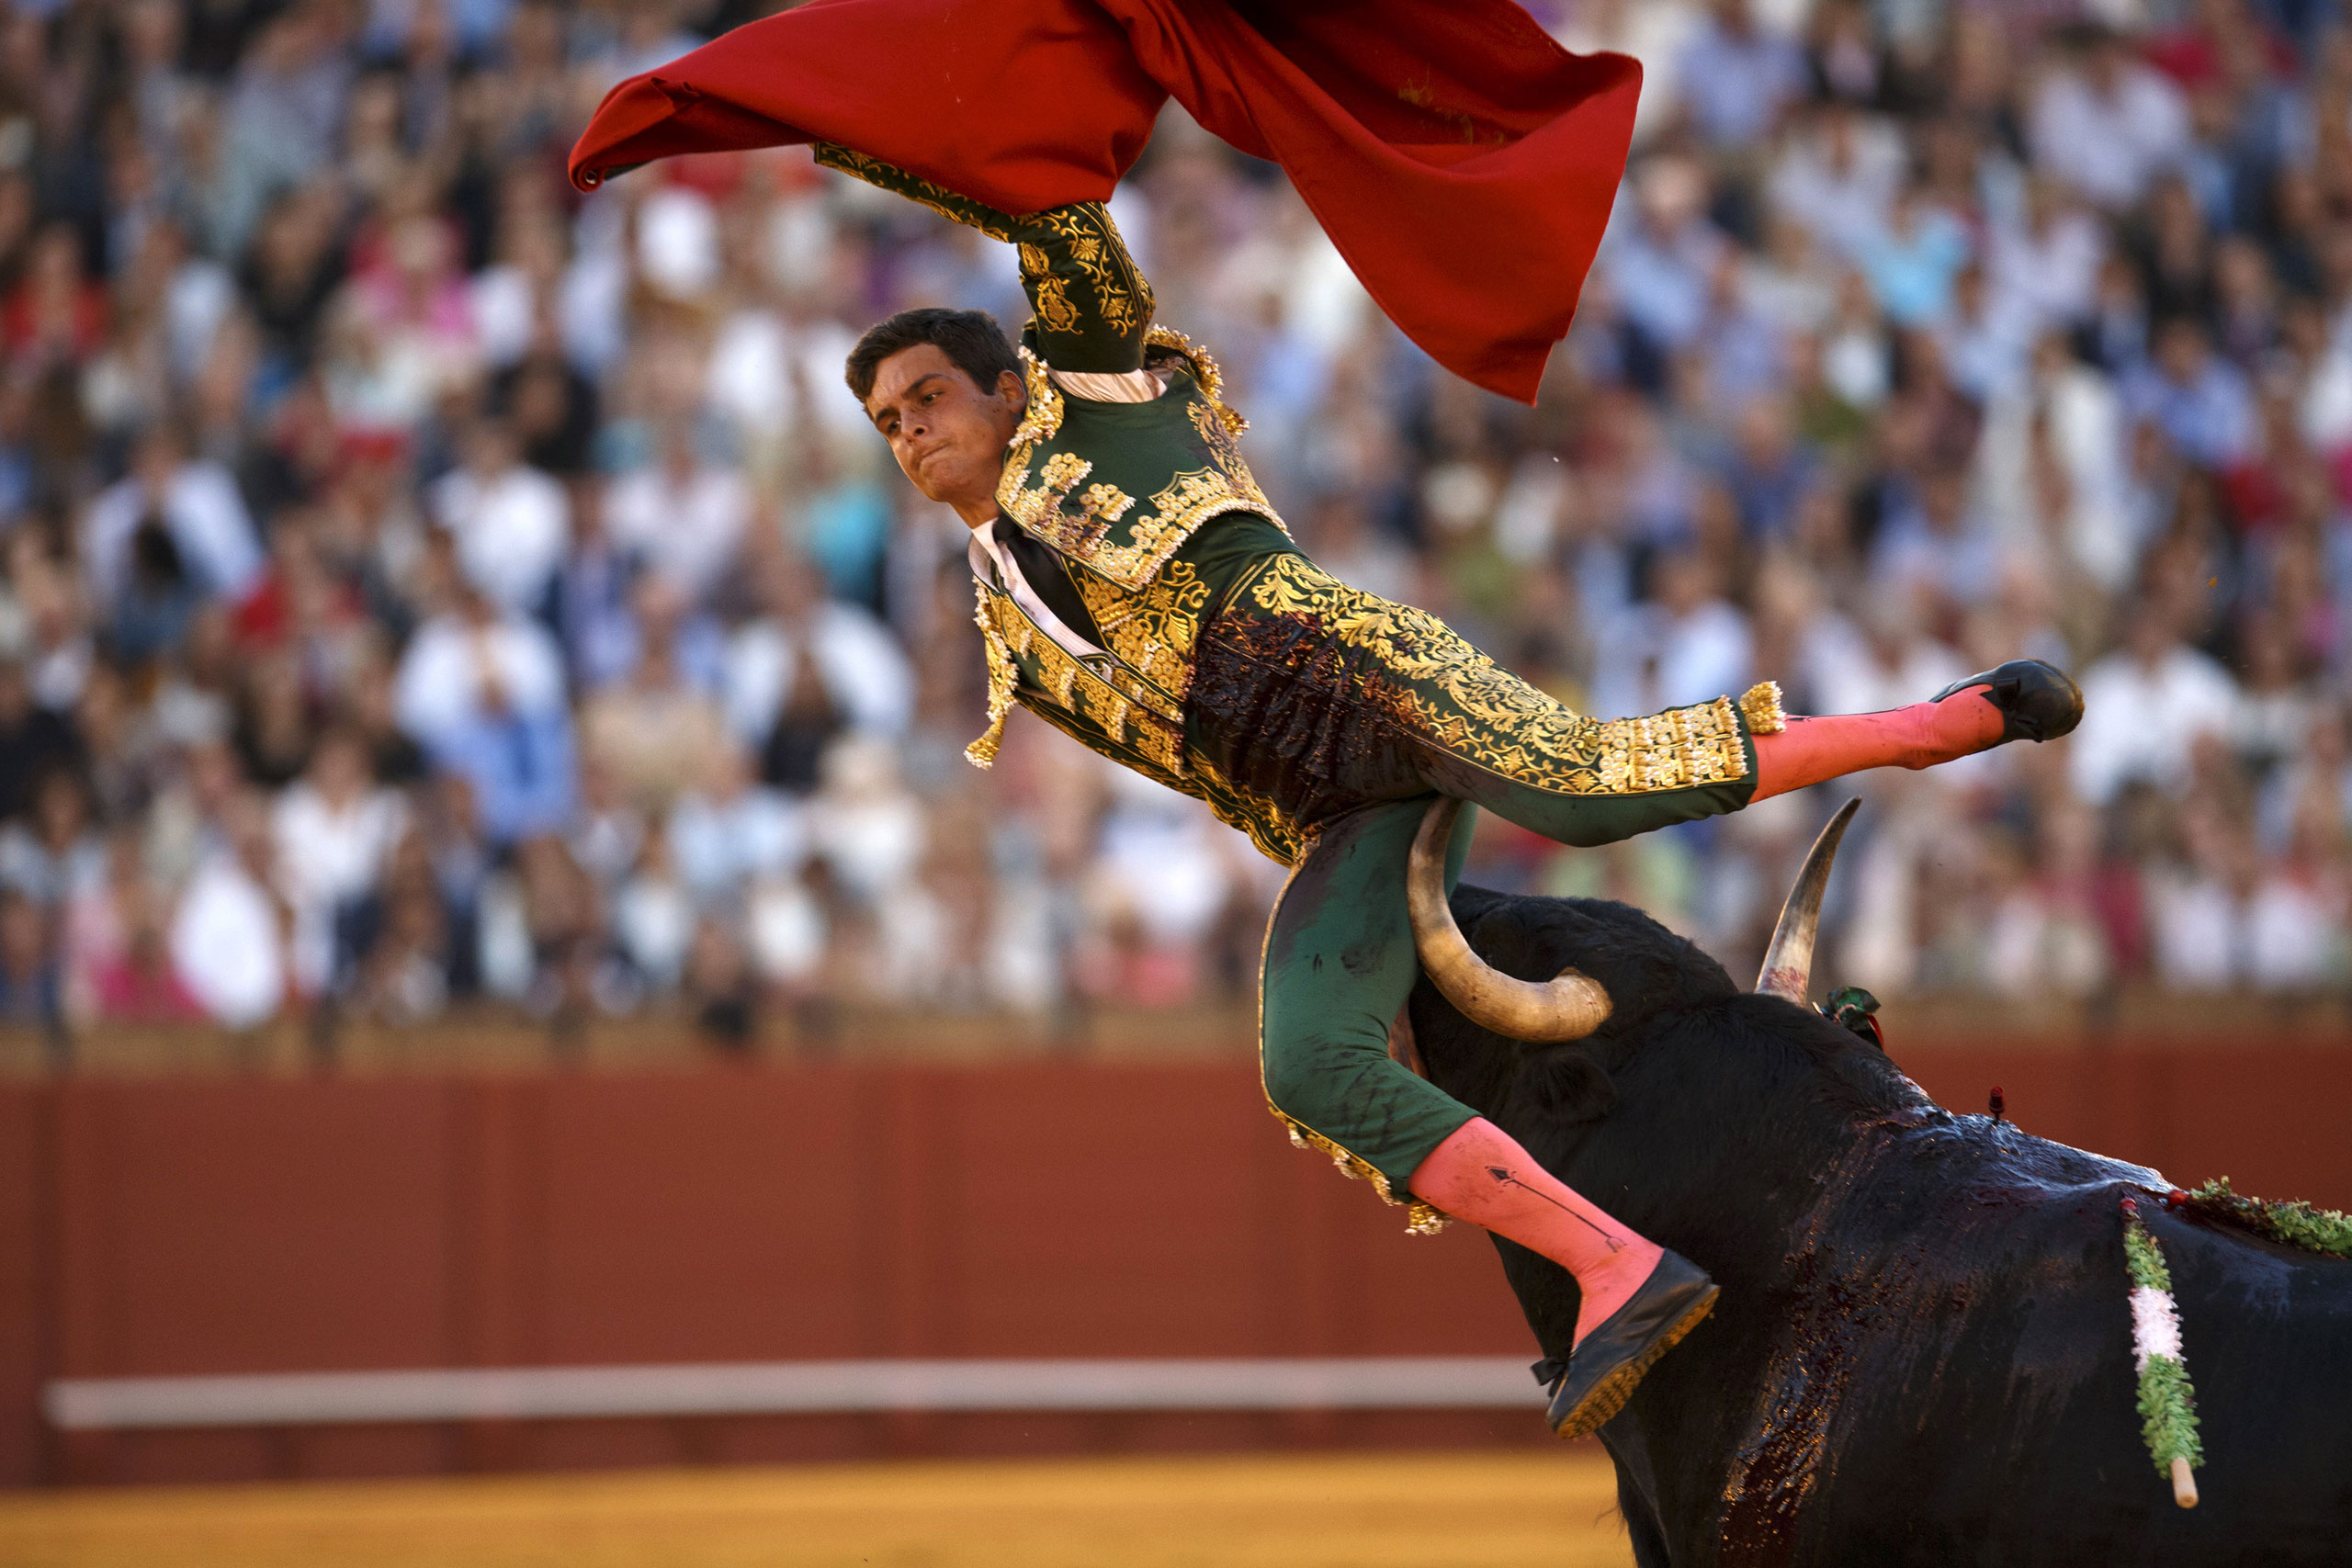 Spanish matador David Galvan is tackled by a bull during a bullfight at The Maestranza bullring, in the Andalusian capital of Seville, Spain, April 24, 2015.